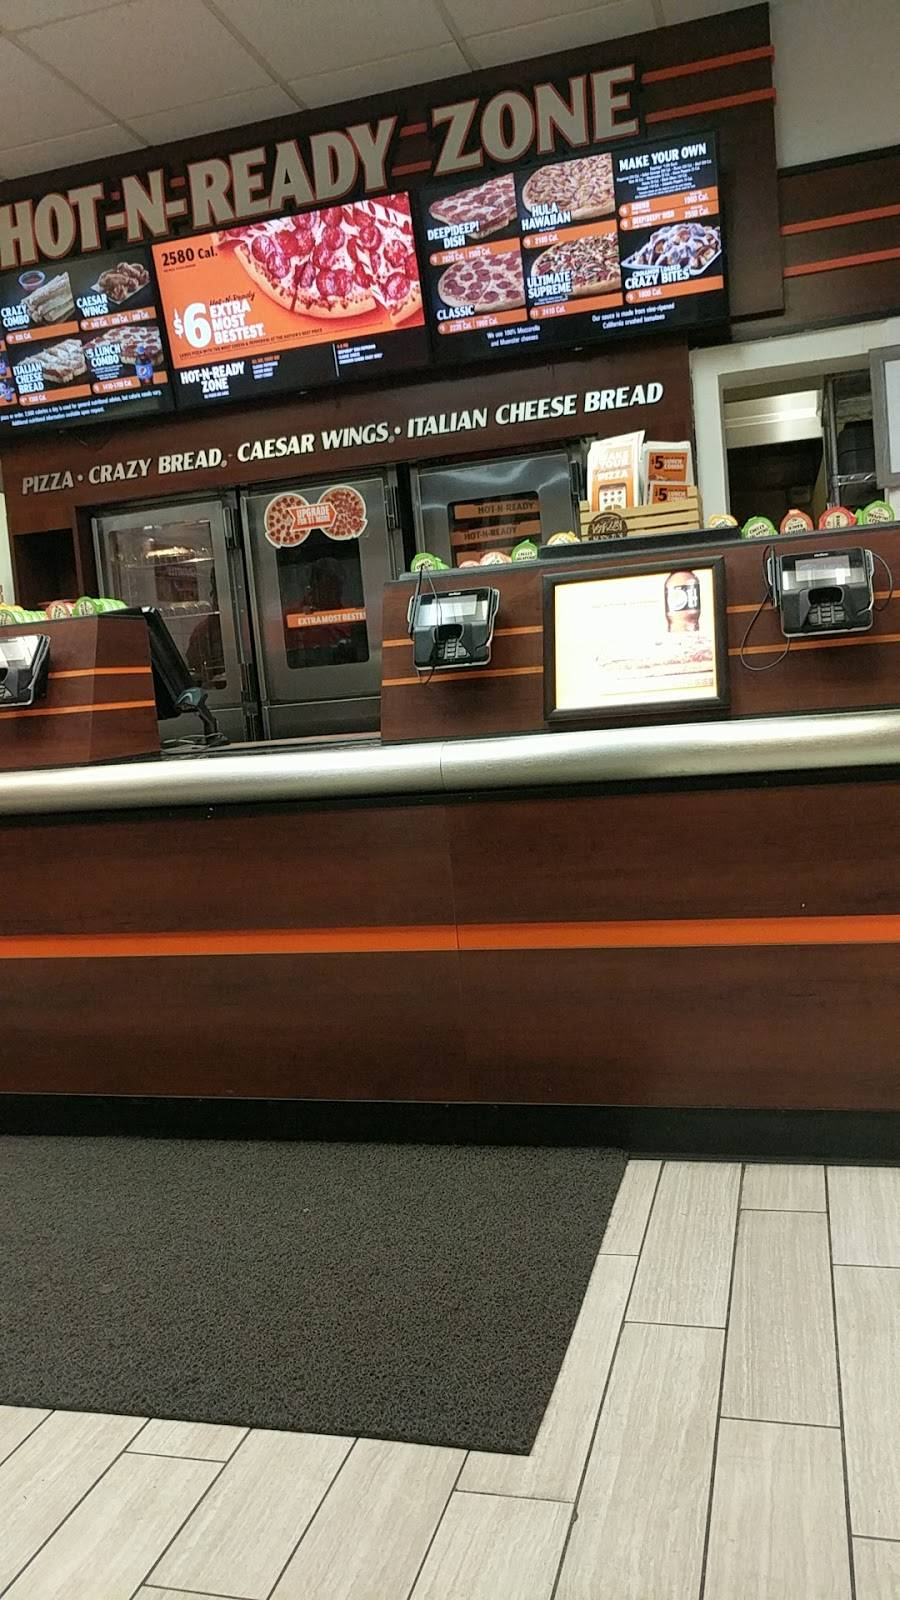 Little Caesars Pizza | meal delivery | 1133 N H St, Lompoc, CA 93436, USA | 8057357782 OR +1 805-735-7782